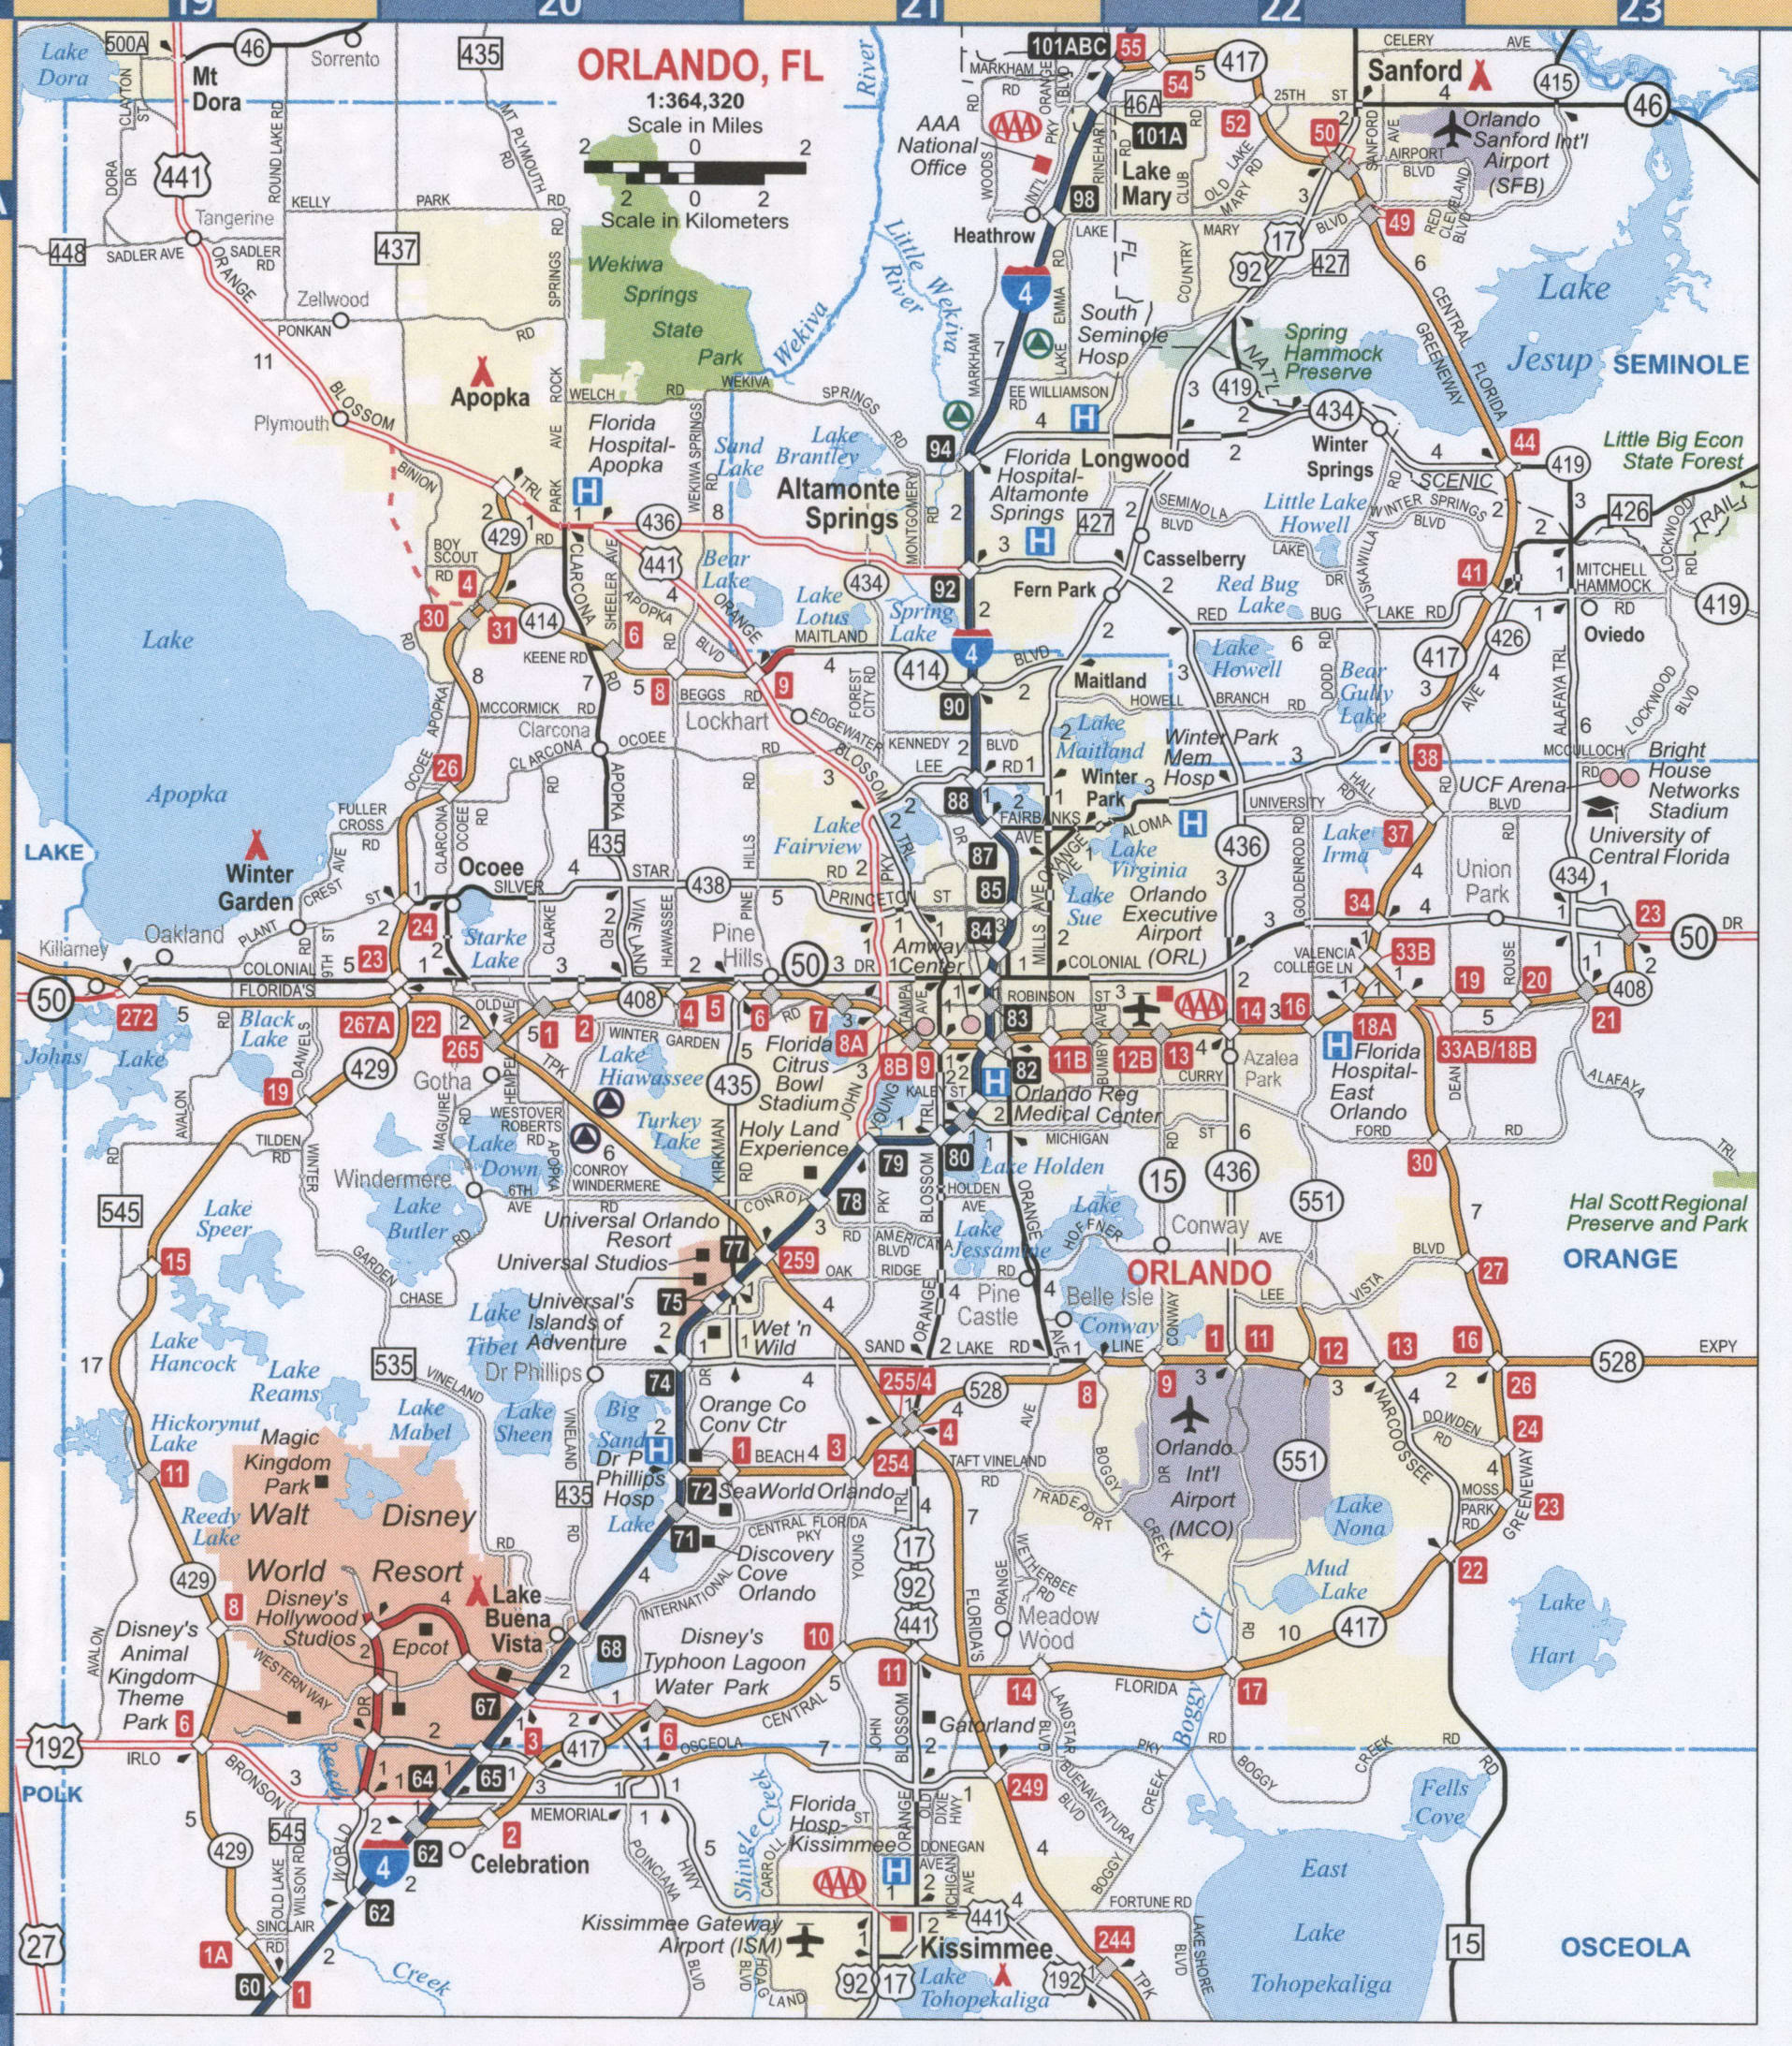 Orlando FL road map